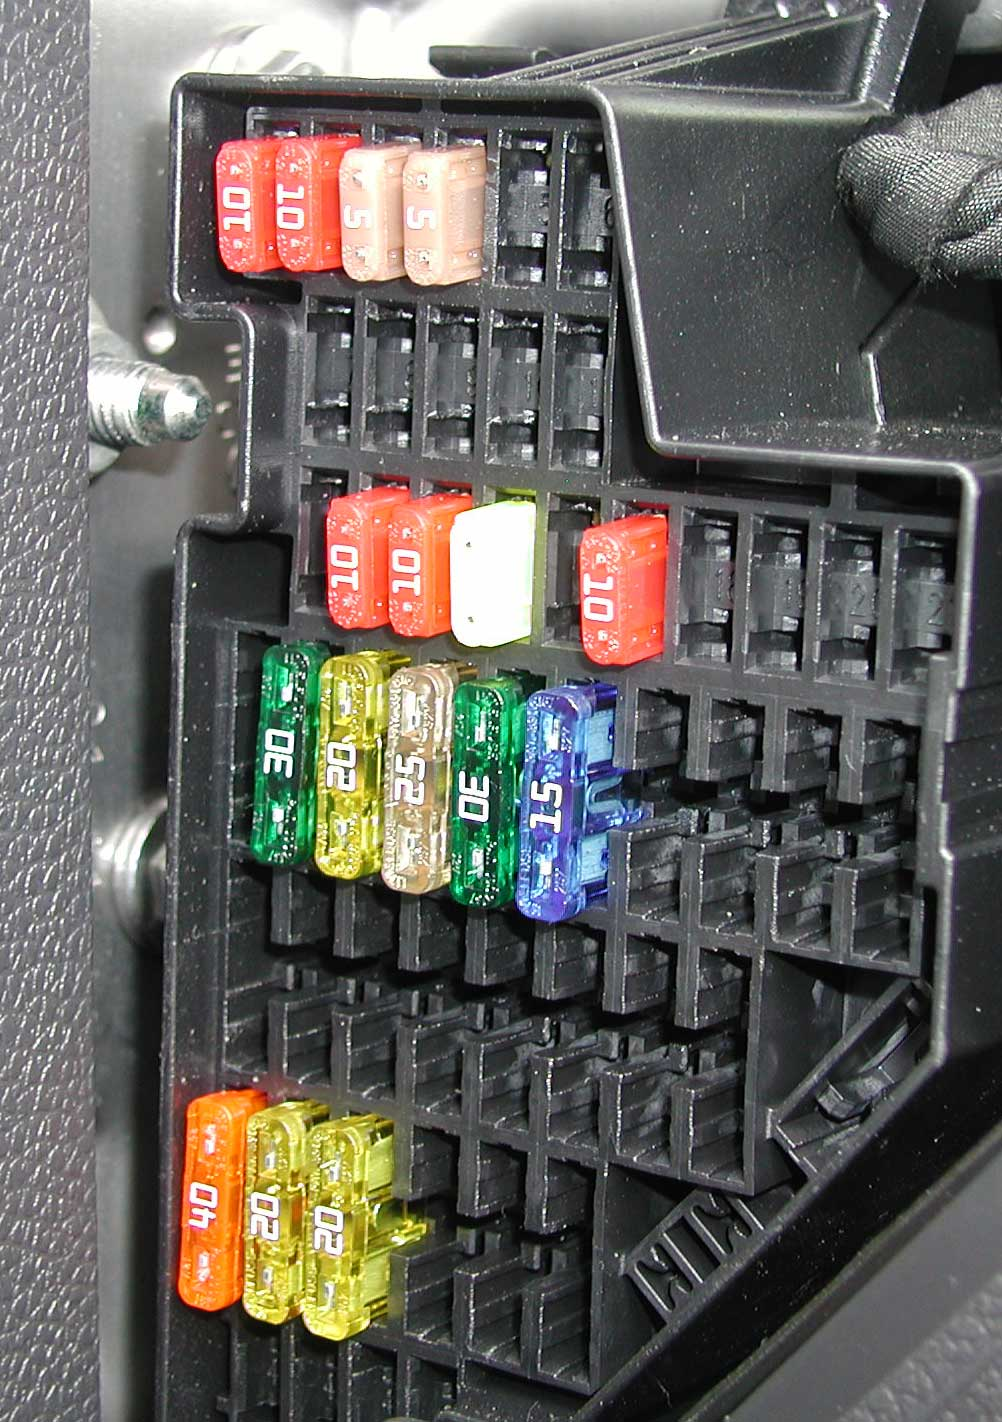 2011 golf tdi fuse box picture please tdiclub forums rh forums tdiclub com  2010 vw polo fuse box 2010 vw jetta fuse box diagram